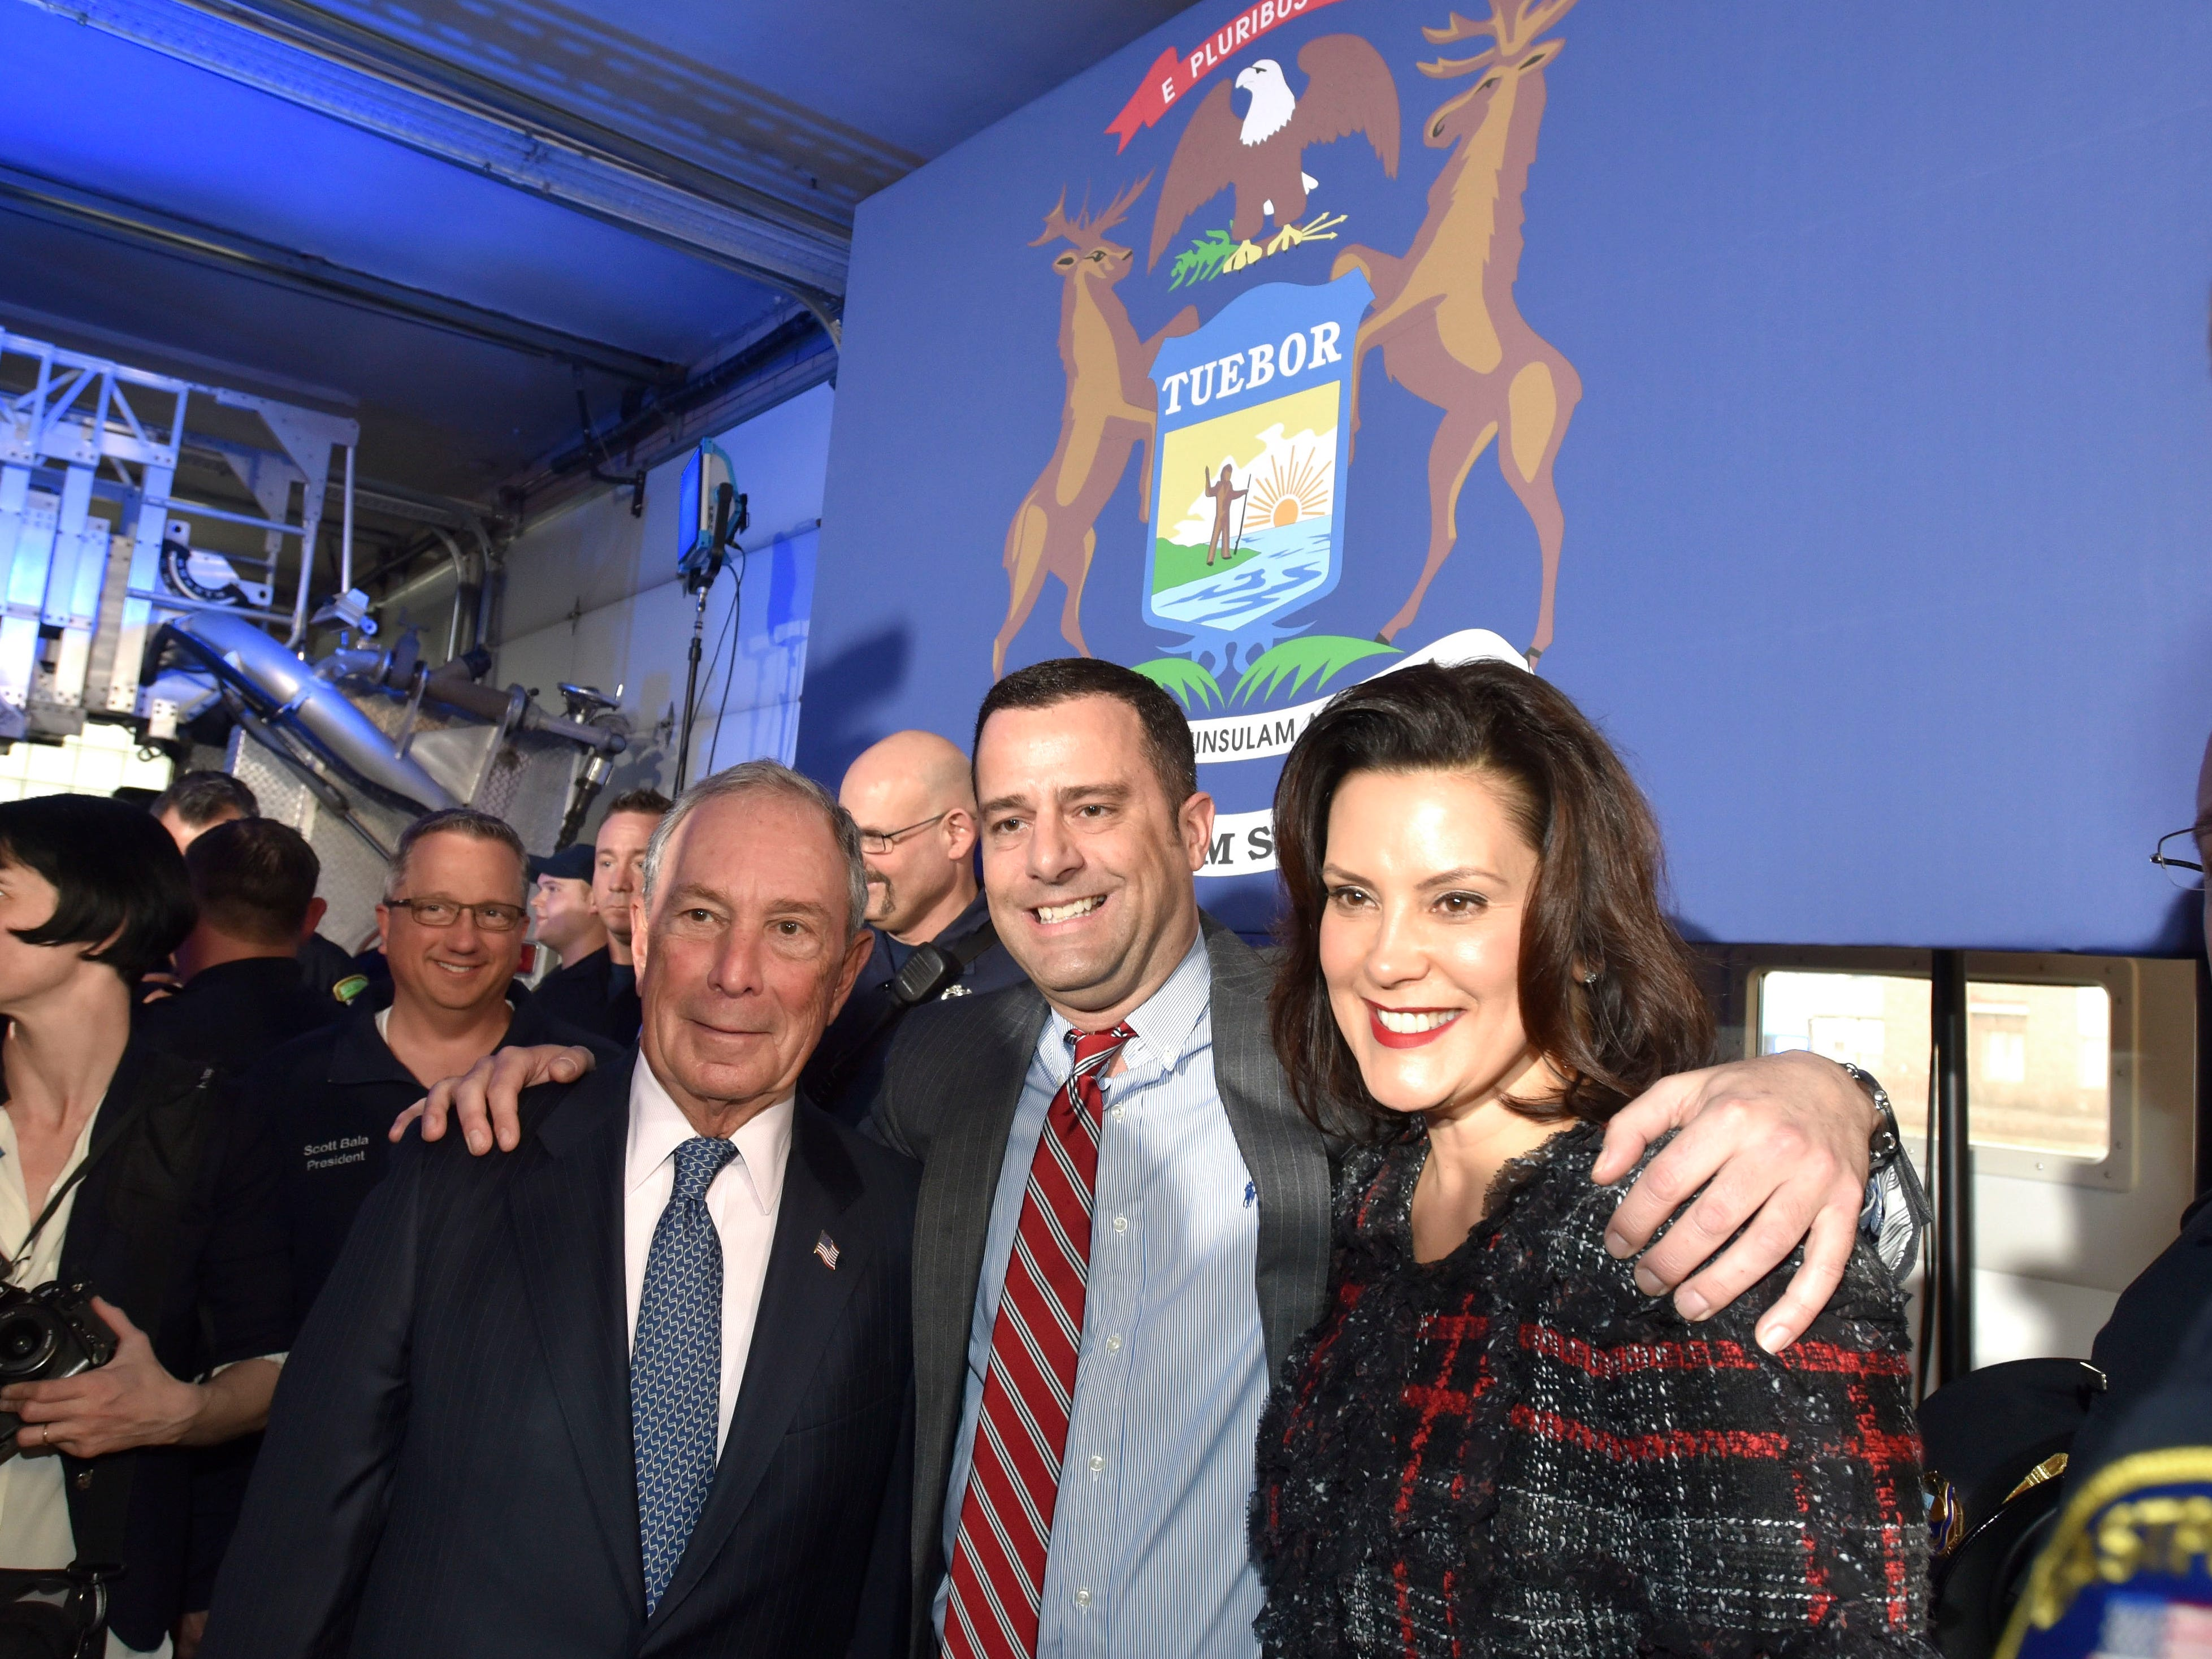 Former City of New York Mayor Michael Bloomberg, left, and Michigan Governor Gretchen Whitmer, right, take pictures with attendees after the press conference.